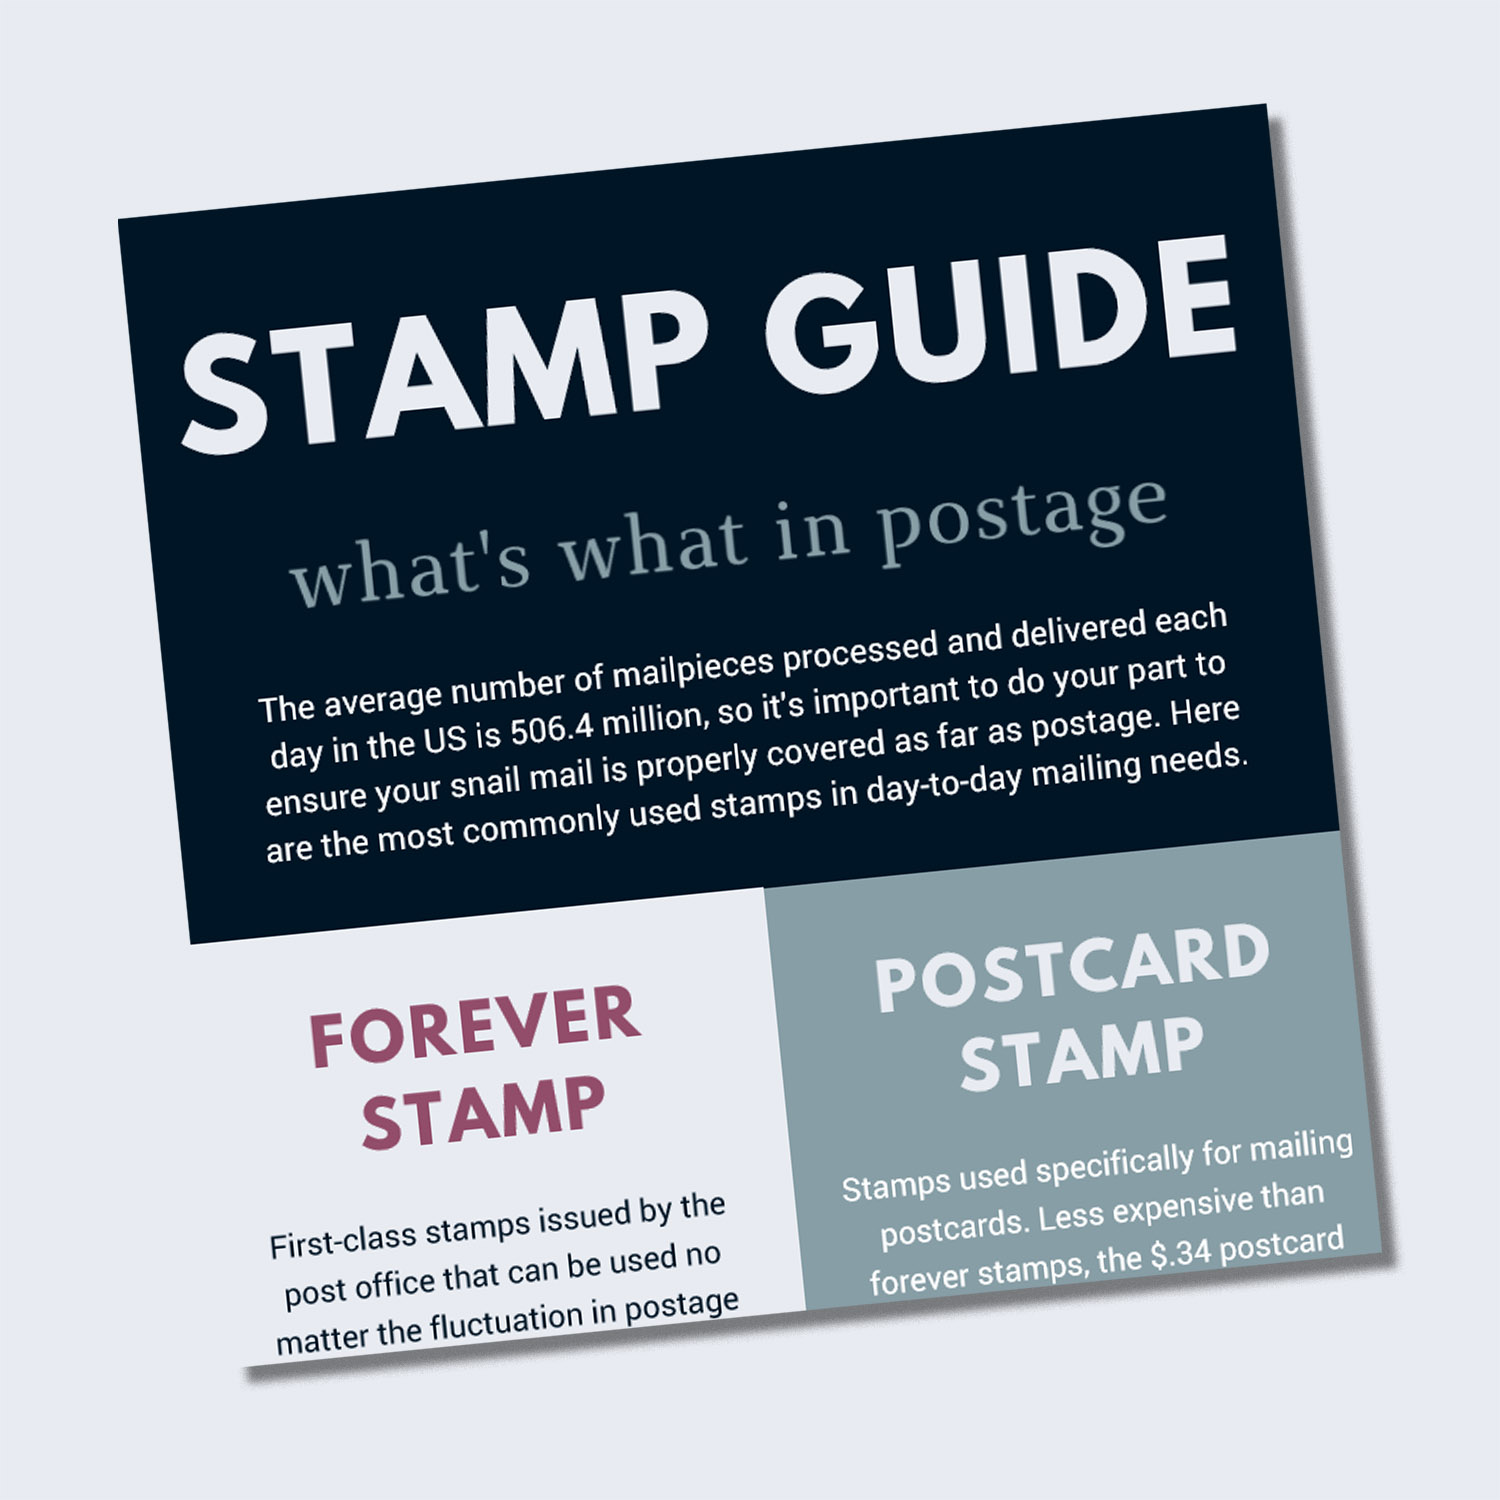 Want the quick version? - Hit the button for instant access to a free cheat sheet all about stamps